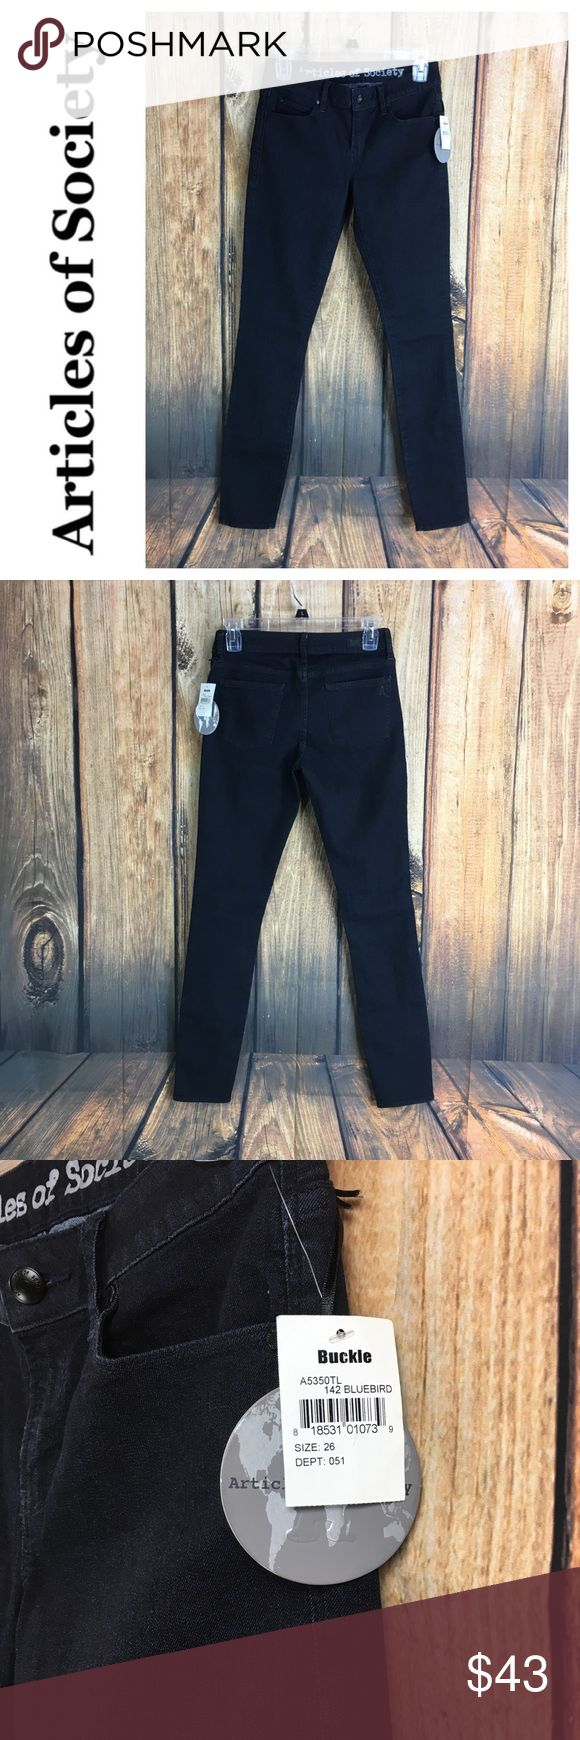 """💙NWT Articles of Society Bluebird skinny jean 💙NWT Articles of Society Bluebird skinny jean size 26  Measurements are approximate  Inseam 31"""" Rise 7 1/2"""" Leg width opening is 5"""" wide  Waist laying flat 12 1/2"""" across   From Buckle comes this Article of Society Bluebird skinny denim jean in size 26 Articles Of Society Jeans Skinny"""